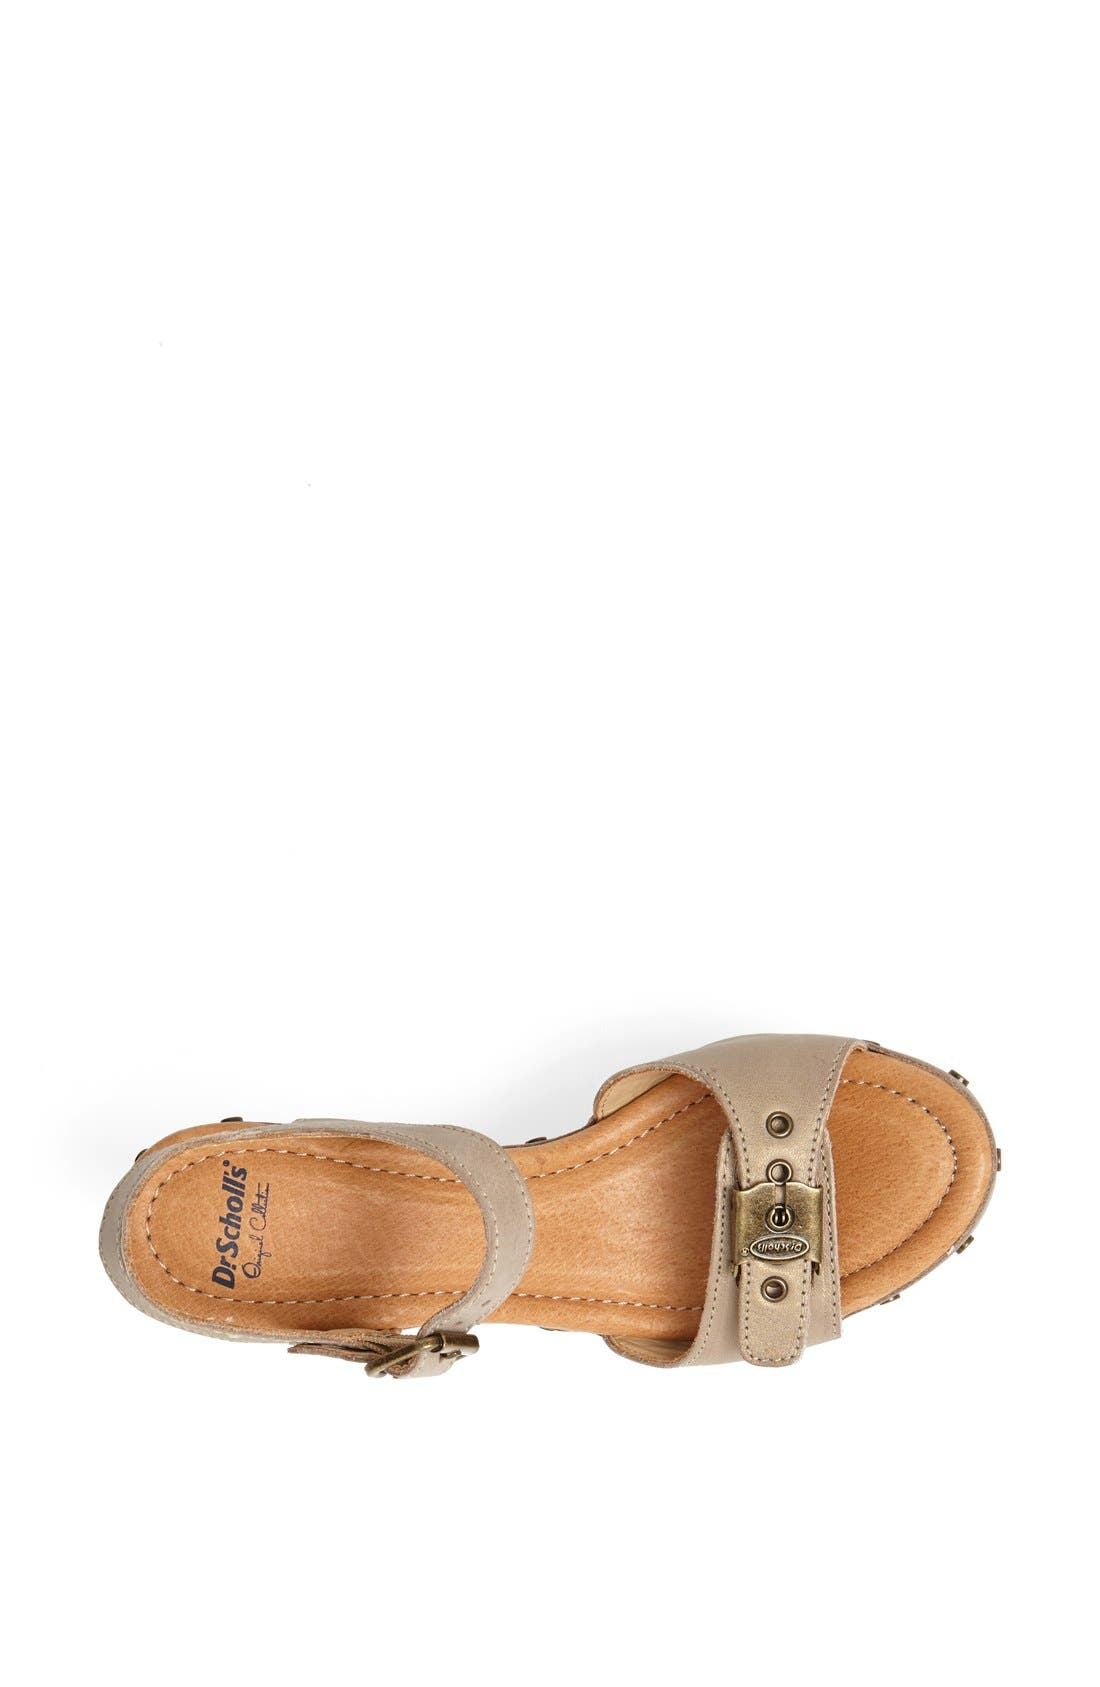 Alternate Image 3  - Dr. Scholl's Original Collection 'Lucia' Sandal